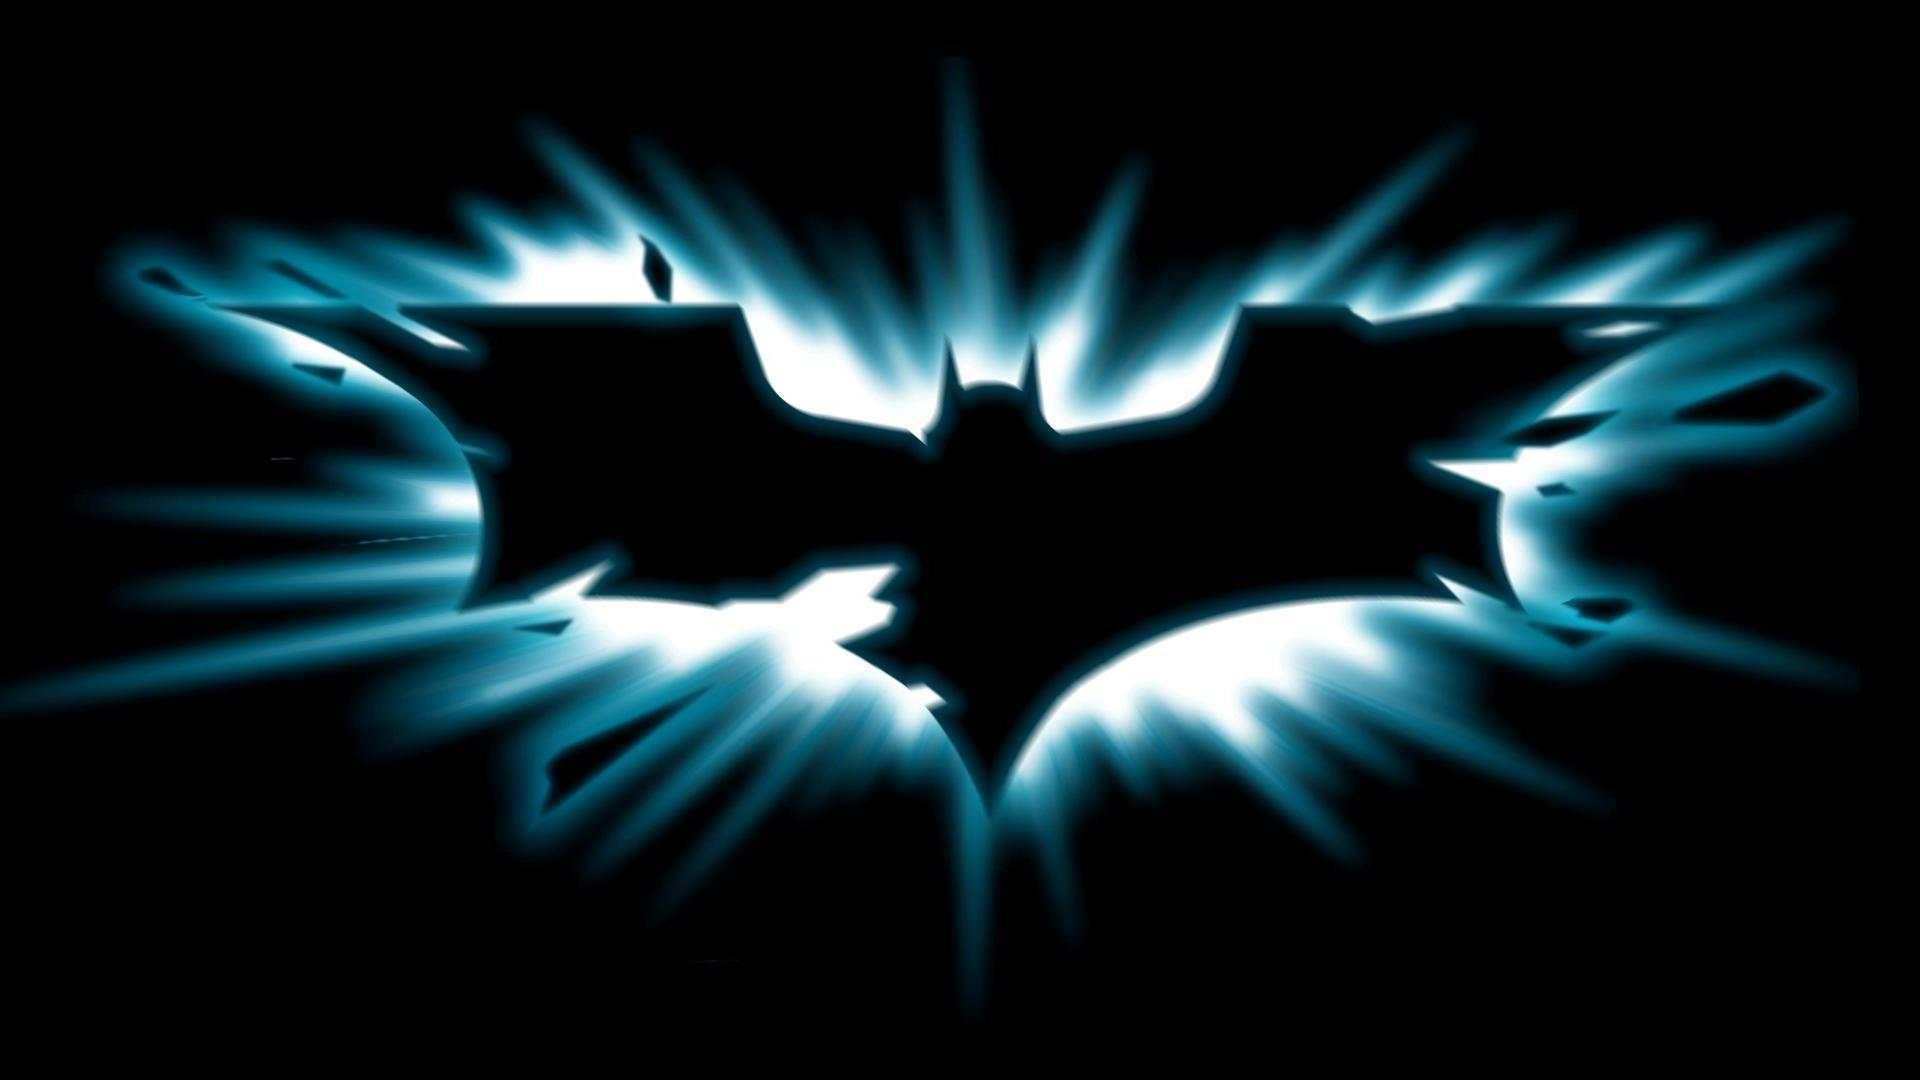 darkknight_logo.jpg (1920×1080)